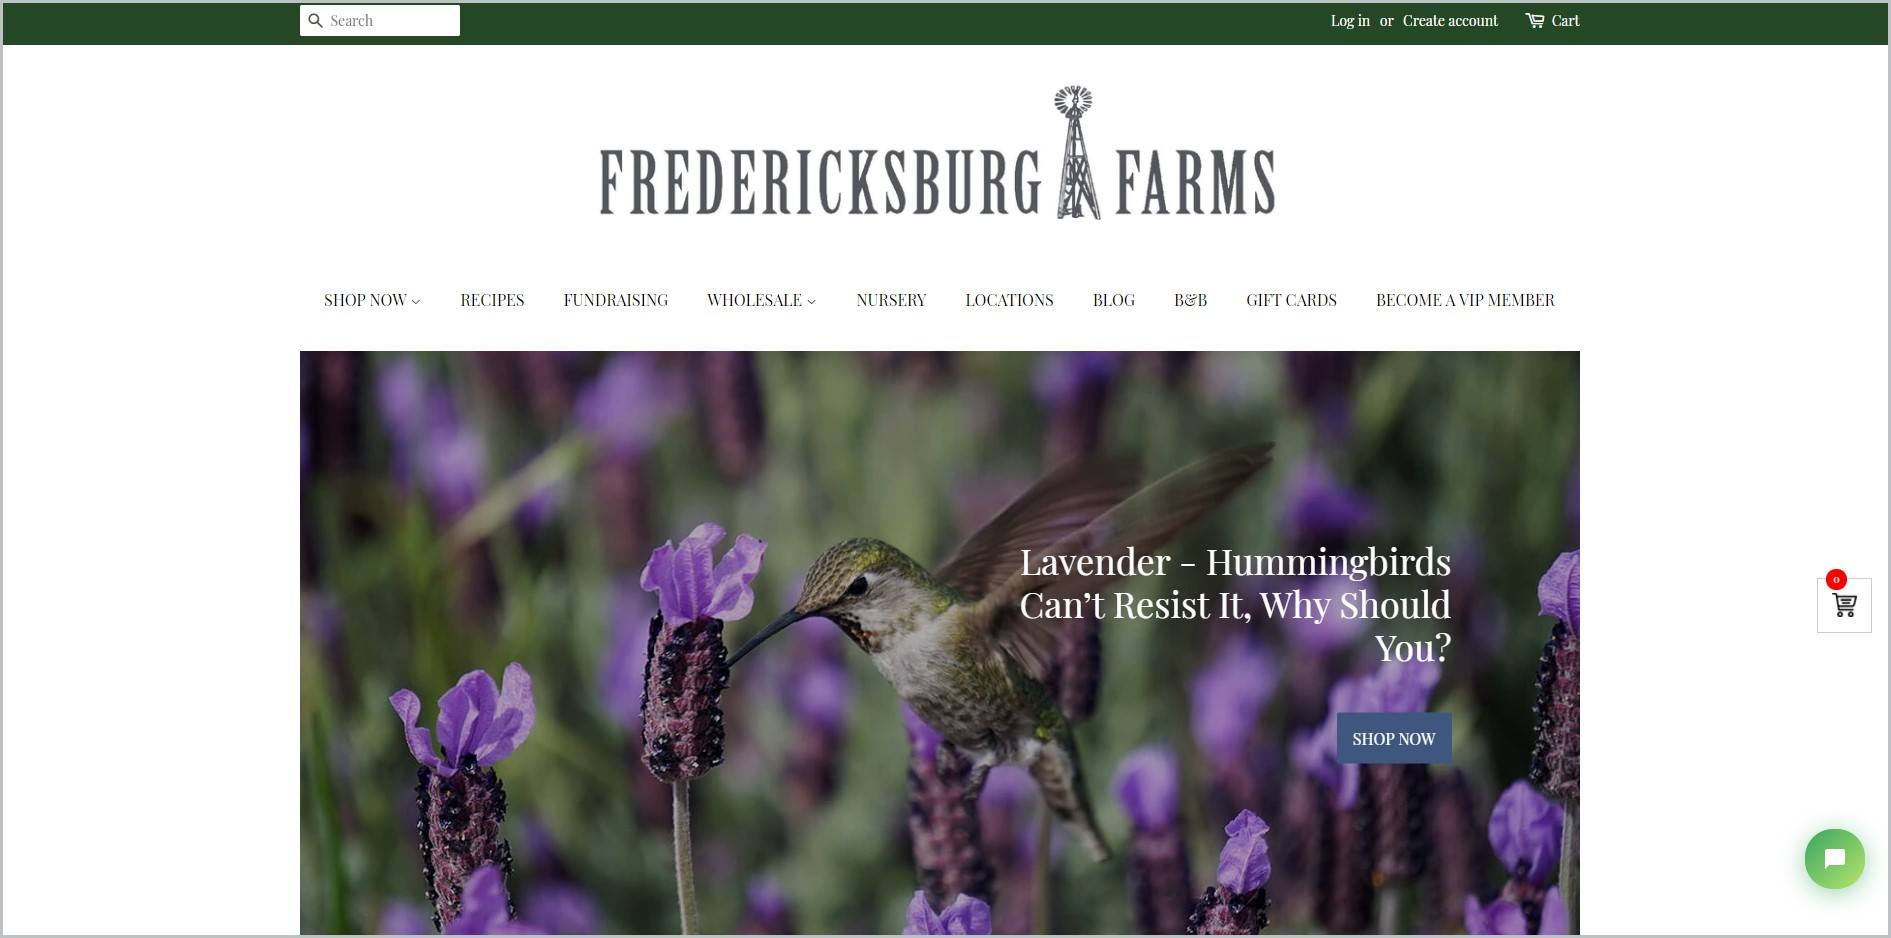 screenshot of Fredericksburg Farms homepage with white header bearing the website's name, showcasing a closeup image of field with lavender-colored flowers and a bird pecking at one of the flowers